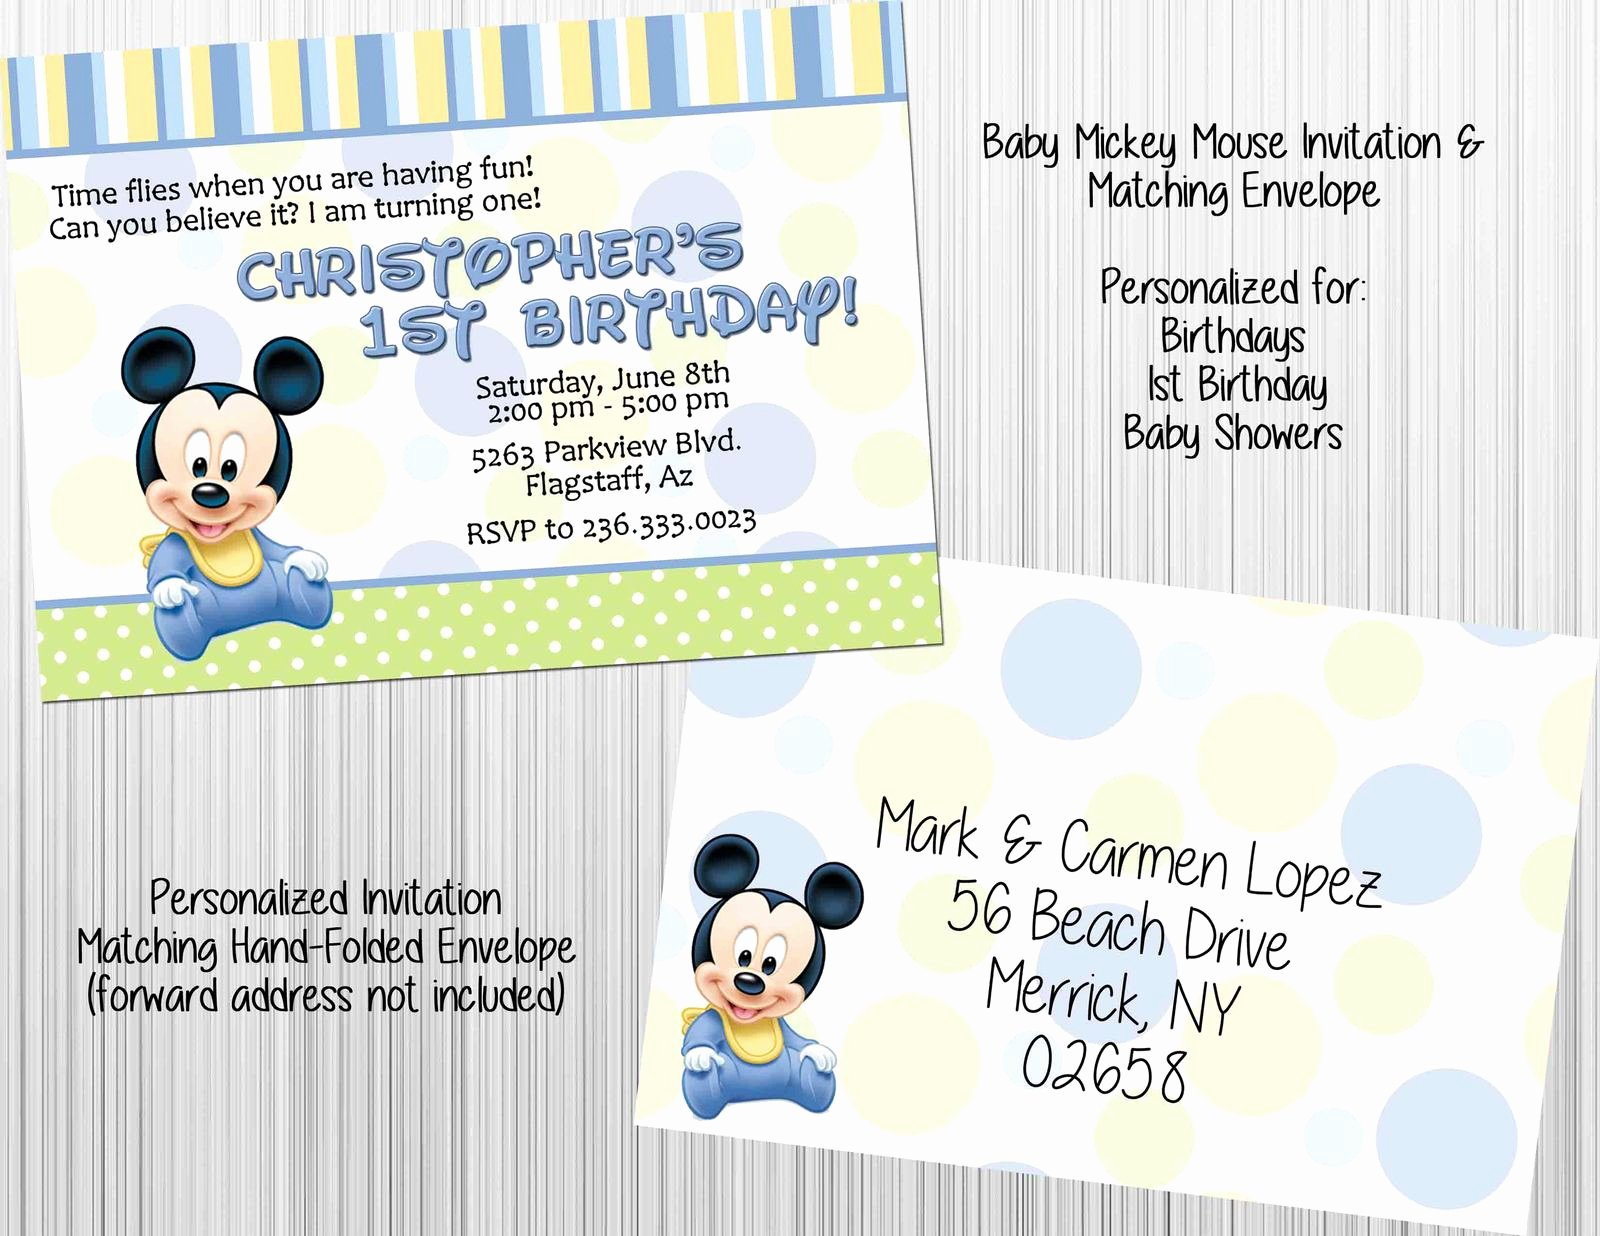 Mickey Mouse Picture Invitations Unique Baby Mickey Mouse Invitation Set Envelopes Birthday